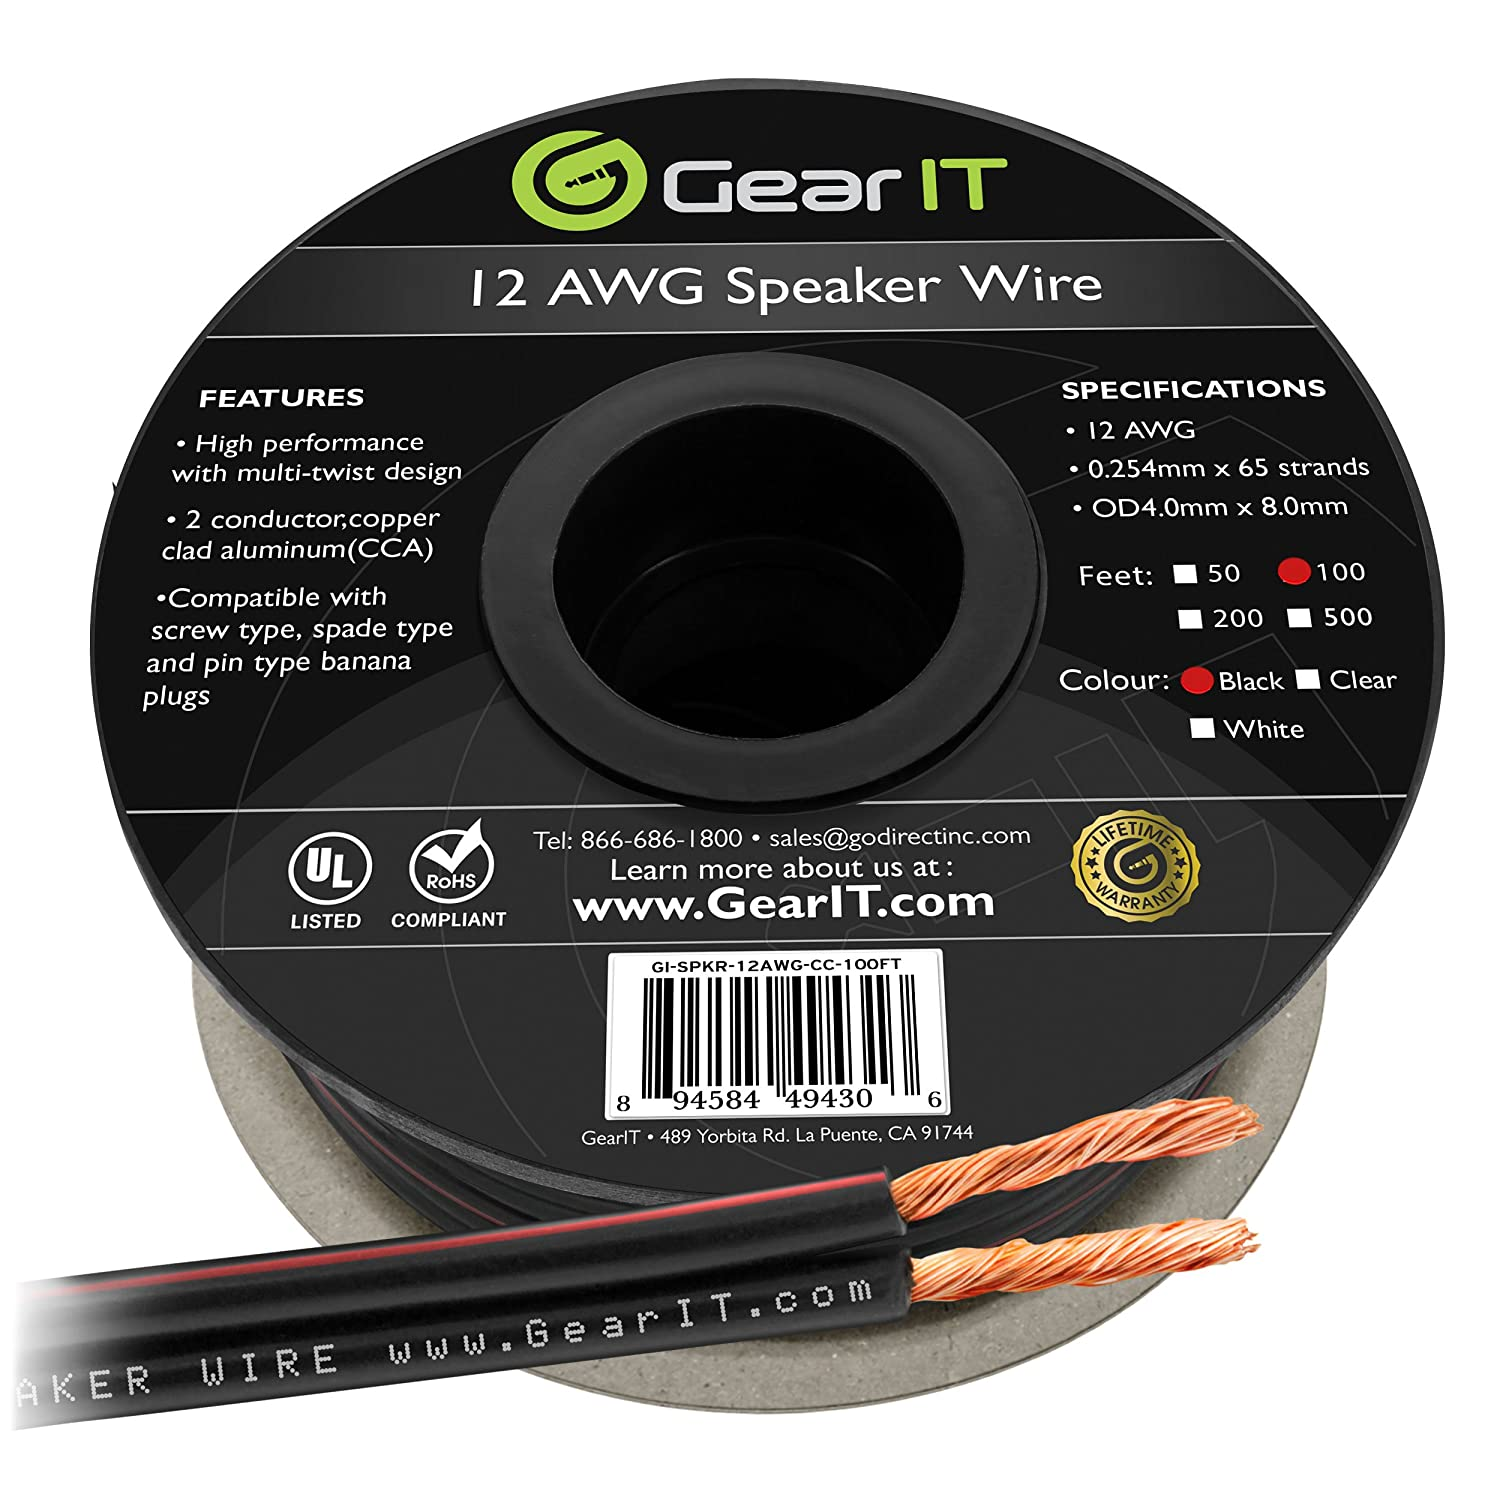 White 12AWG Speaker Wire 200 Feet // 60.96 Meters GearIT Pro Series 12 Gauge Speaker Wire Cable Great Use for Home Theater Speakers and Car Speakers